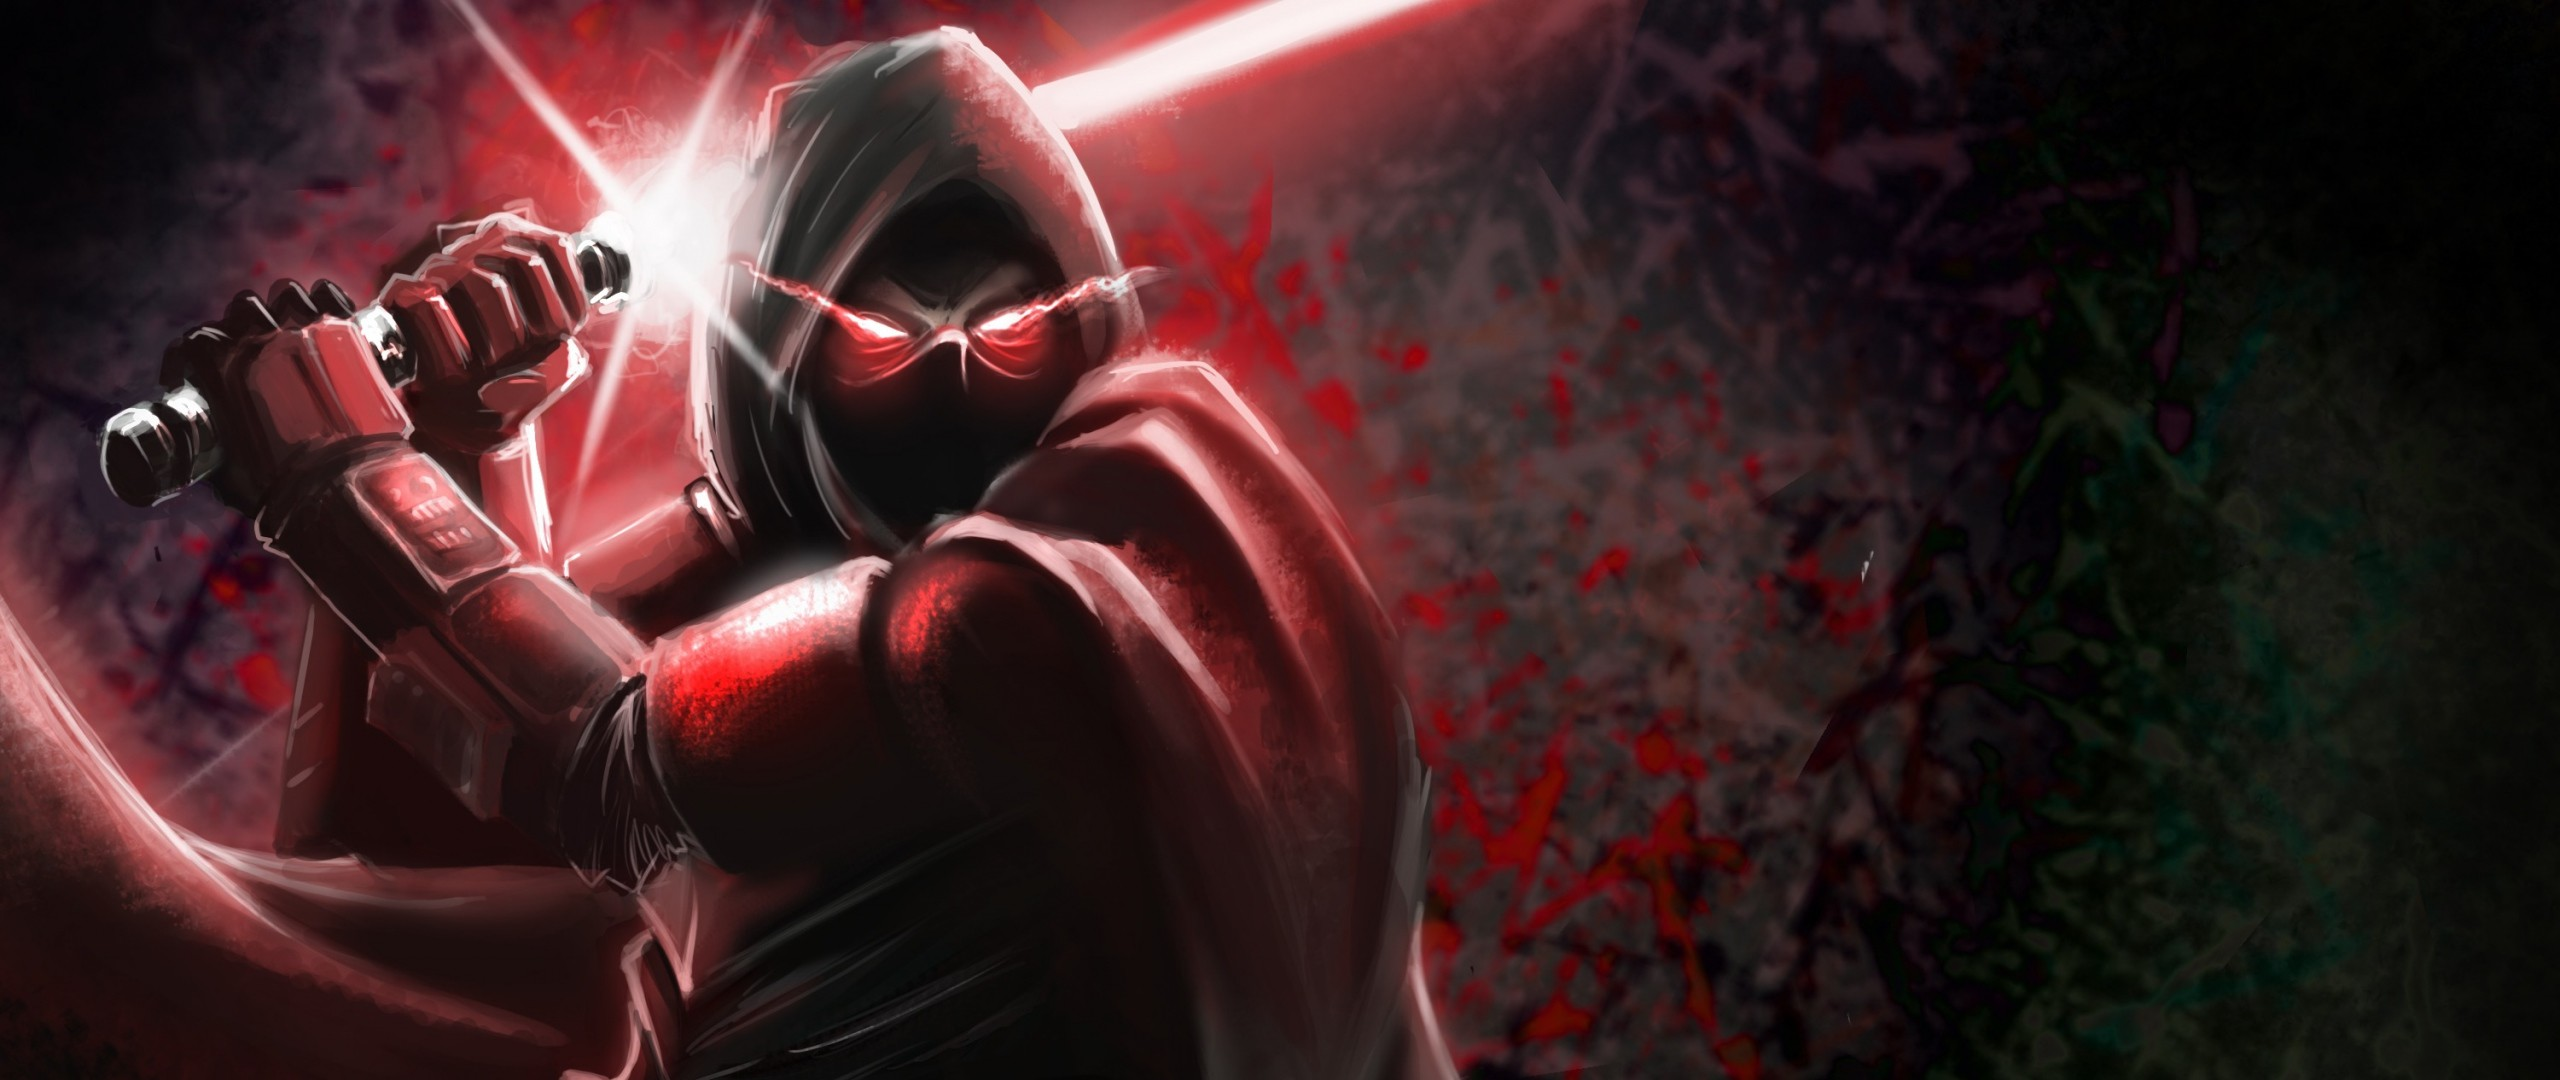 2560x1080  Wallpaper sith, star wars, art, dark side